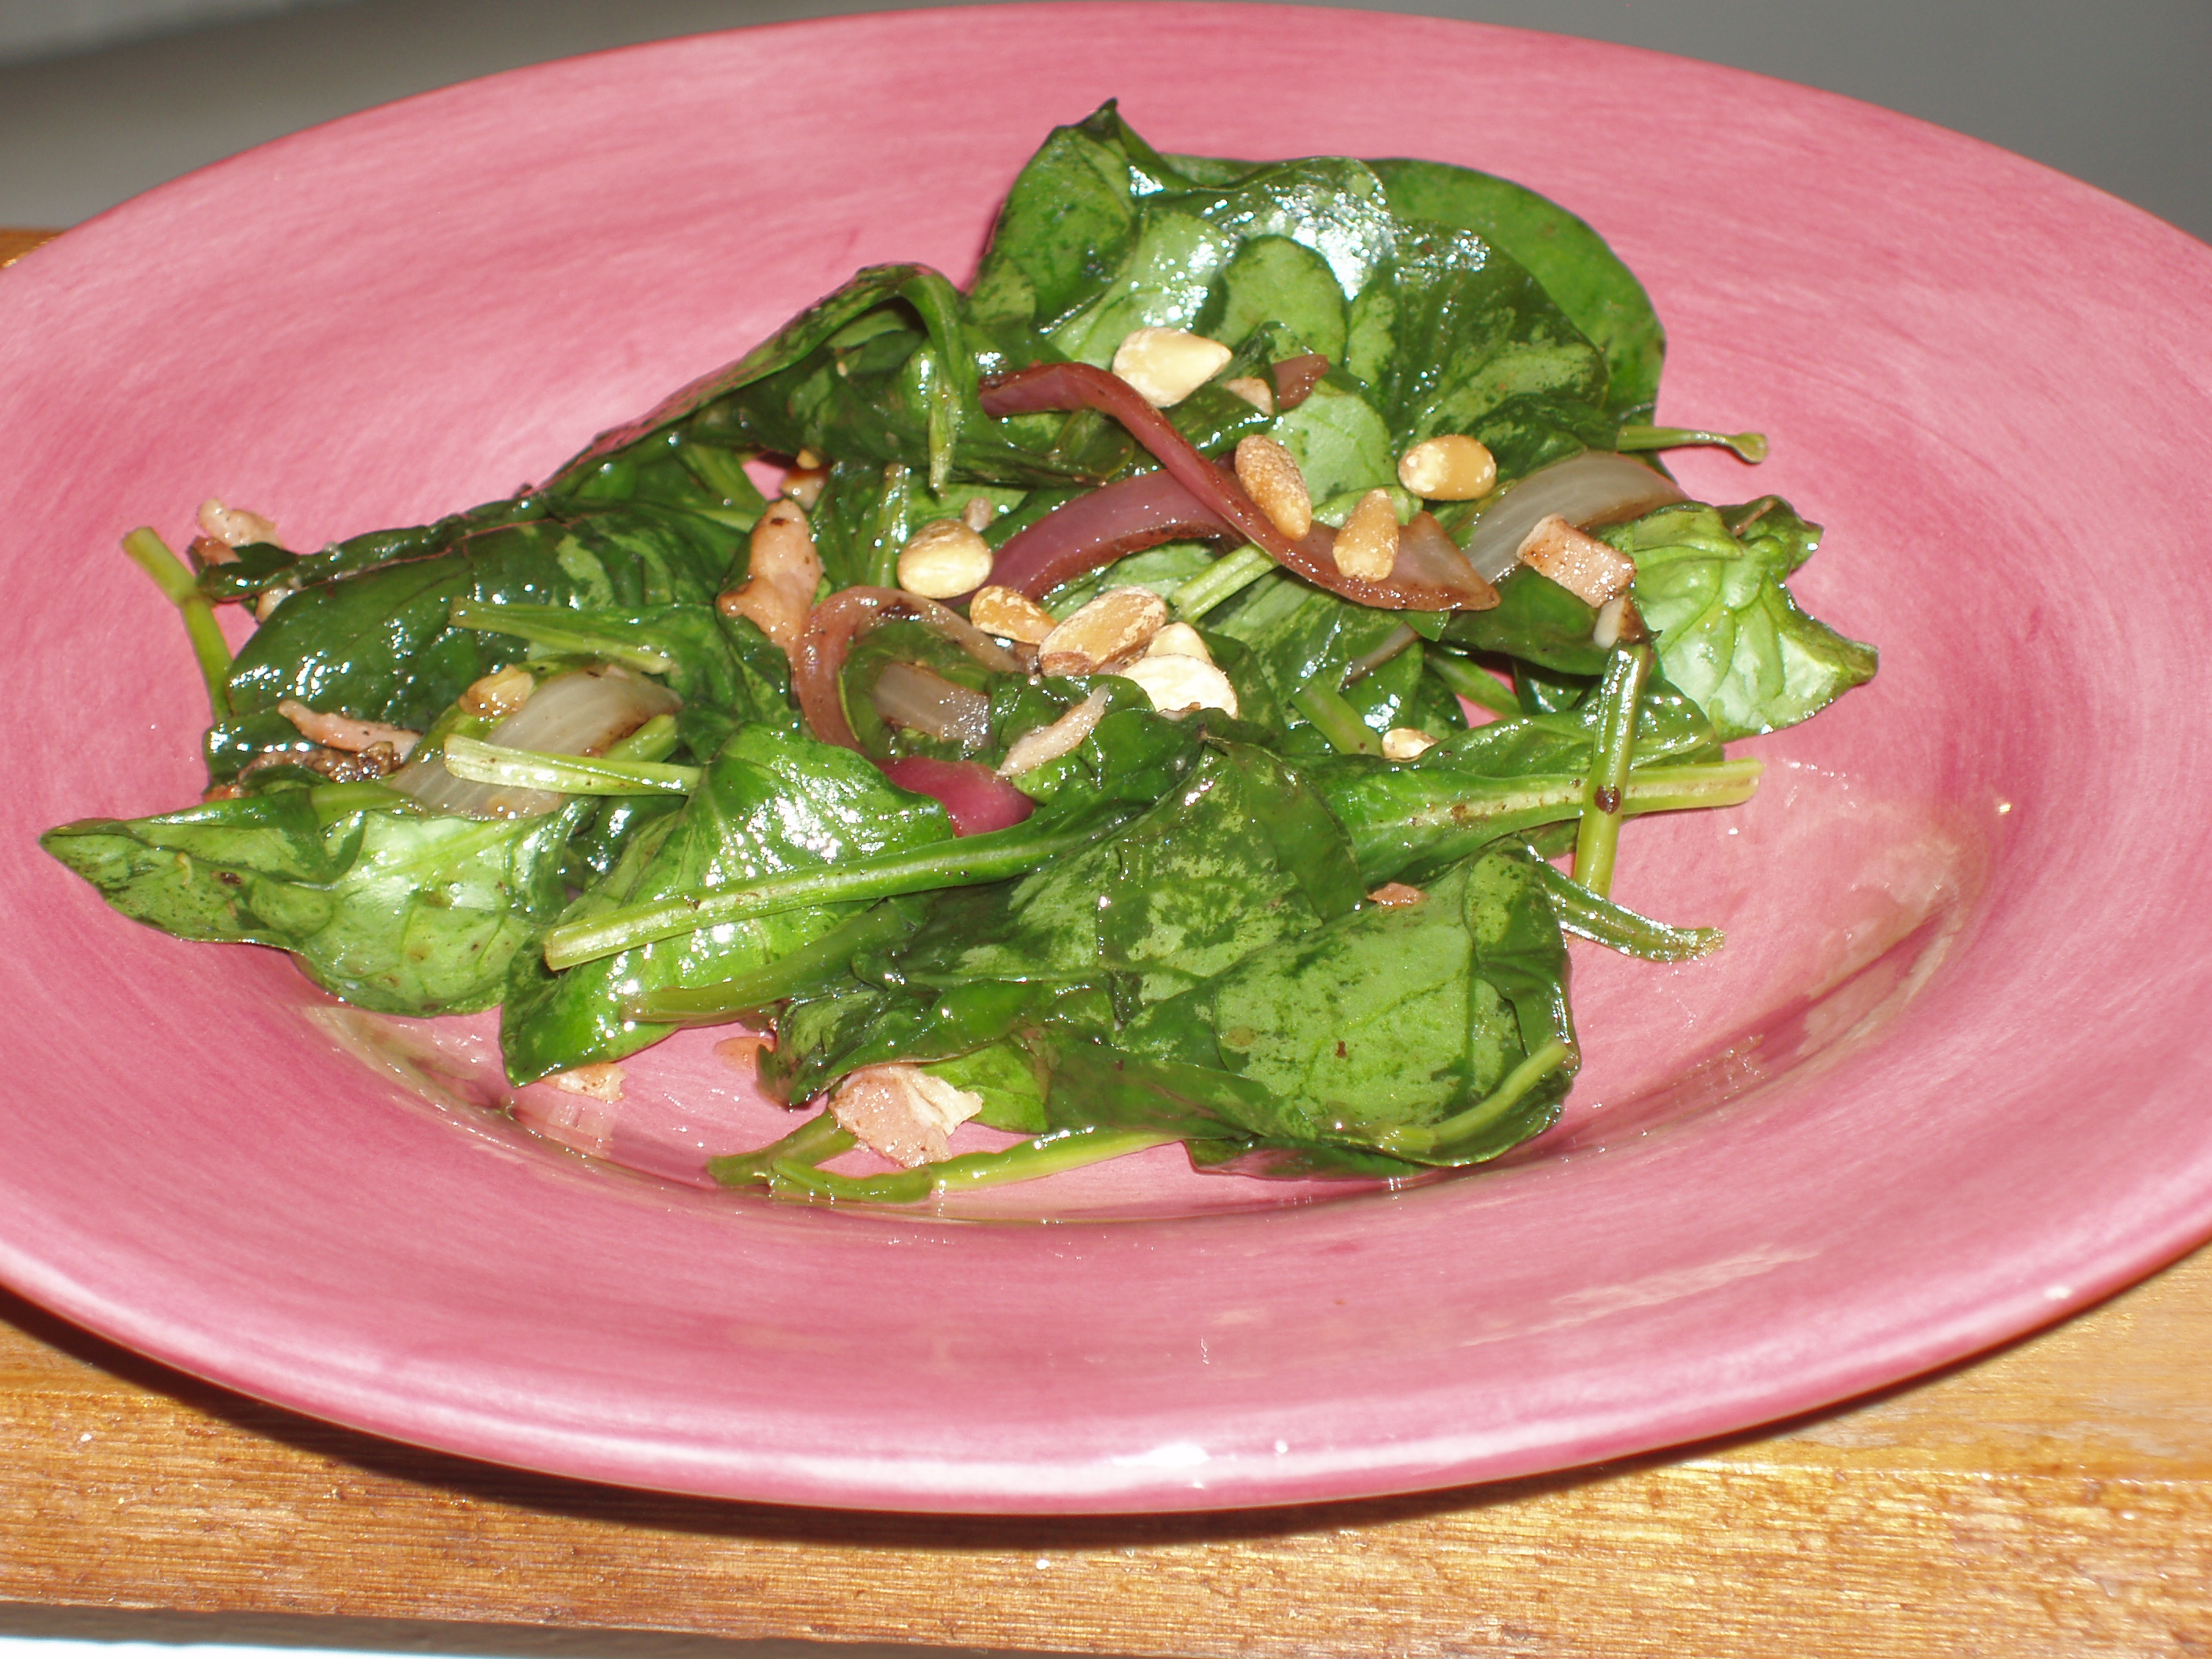 Wilted Spinach Salad Nancy's Way